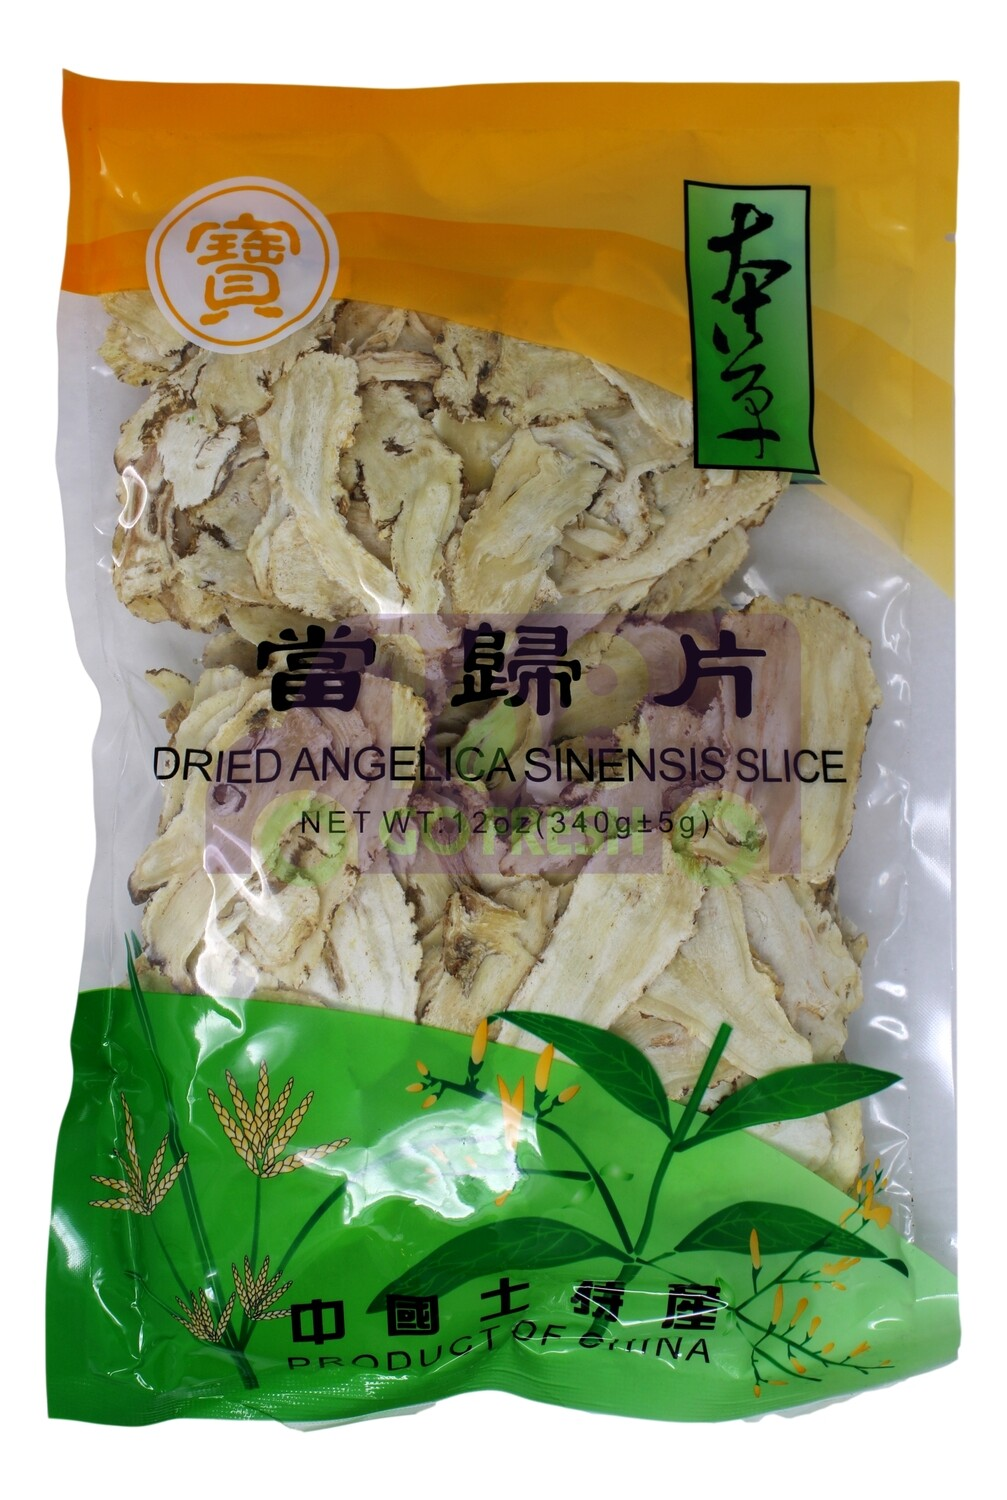 DRIED ANGELICA SINENSIS SLICE 宝牌 当归片(12OZ)